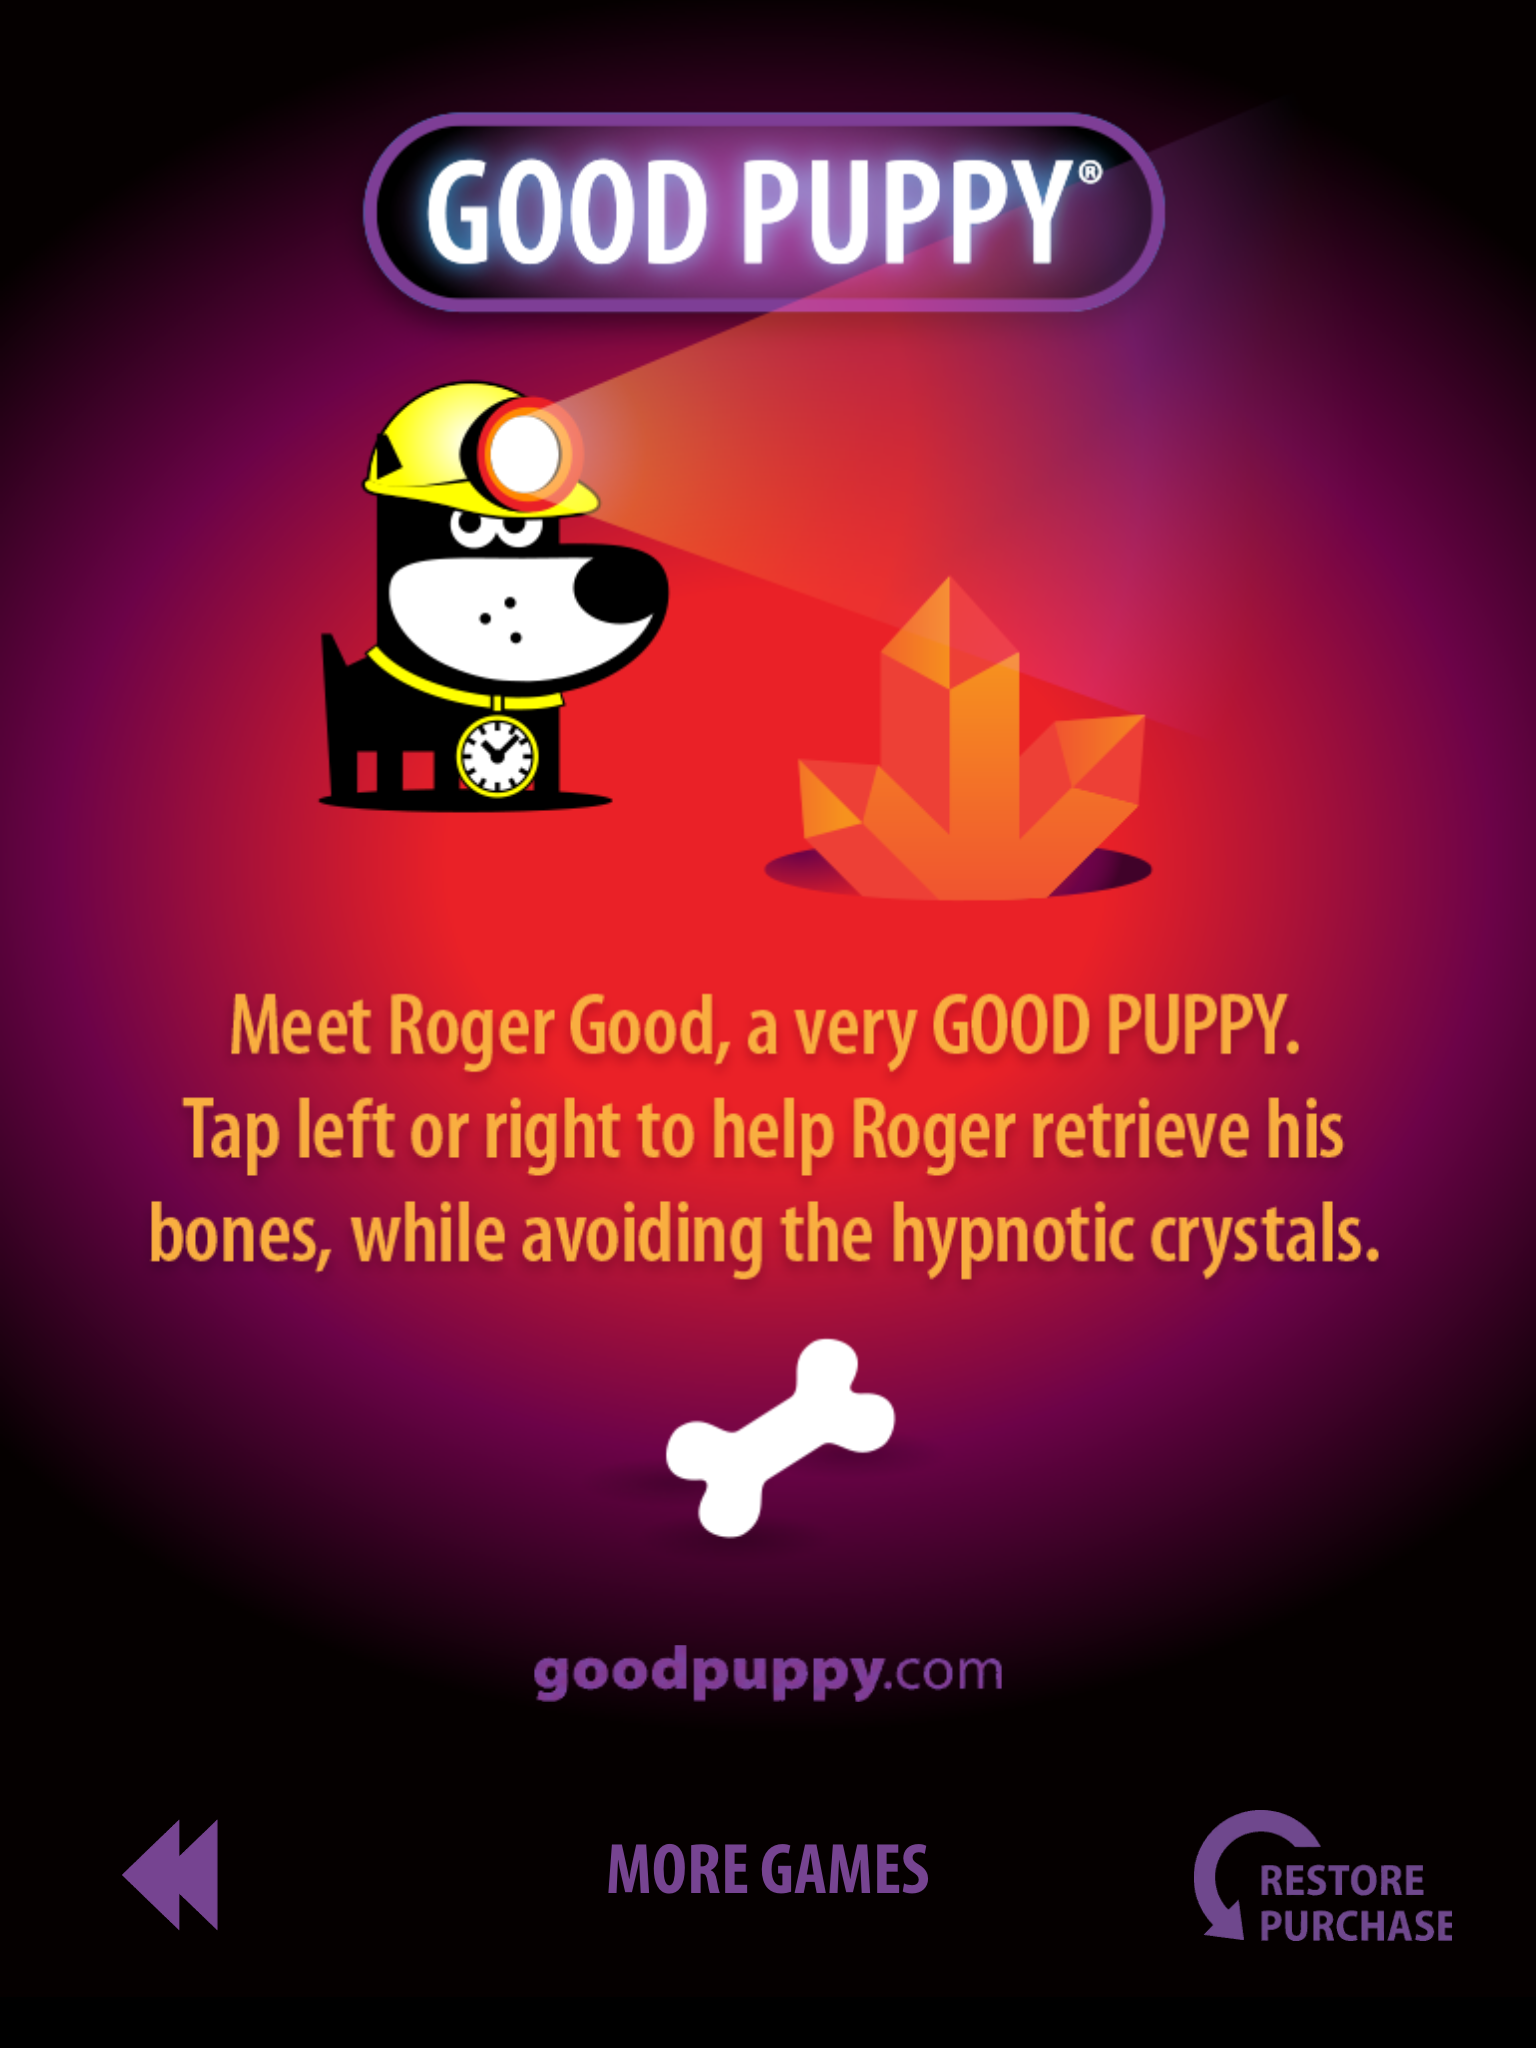 GOOD-PUPPY-DIG-Infinite-Runner-Fast-Retro-Arcade-Game-11.png